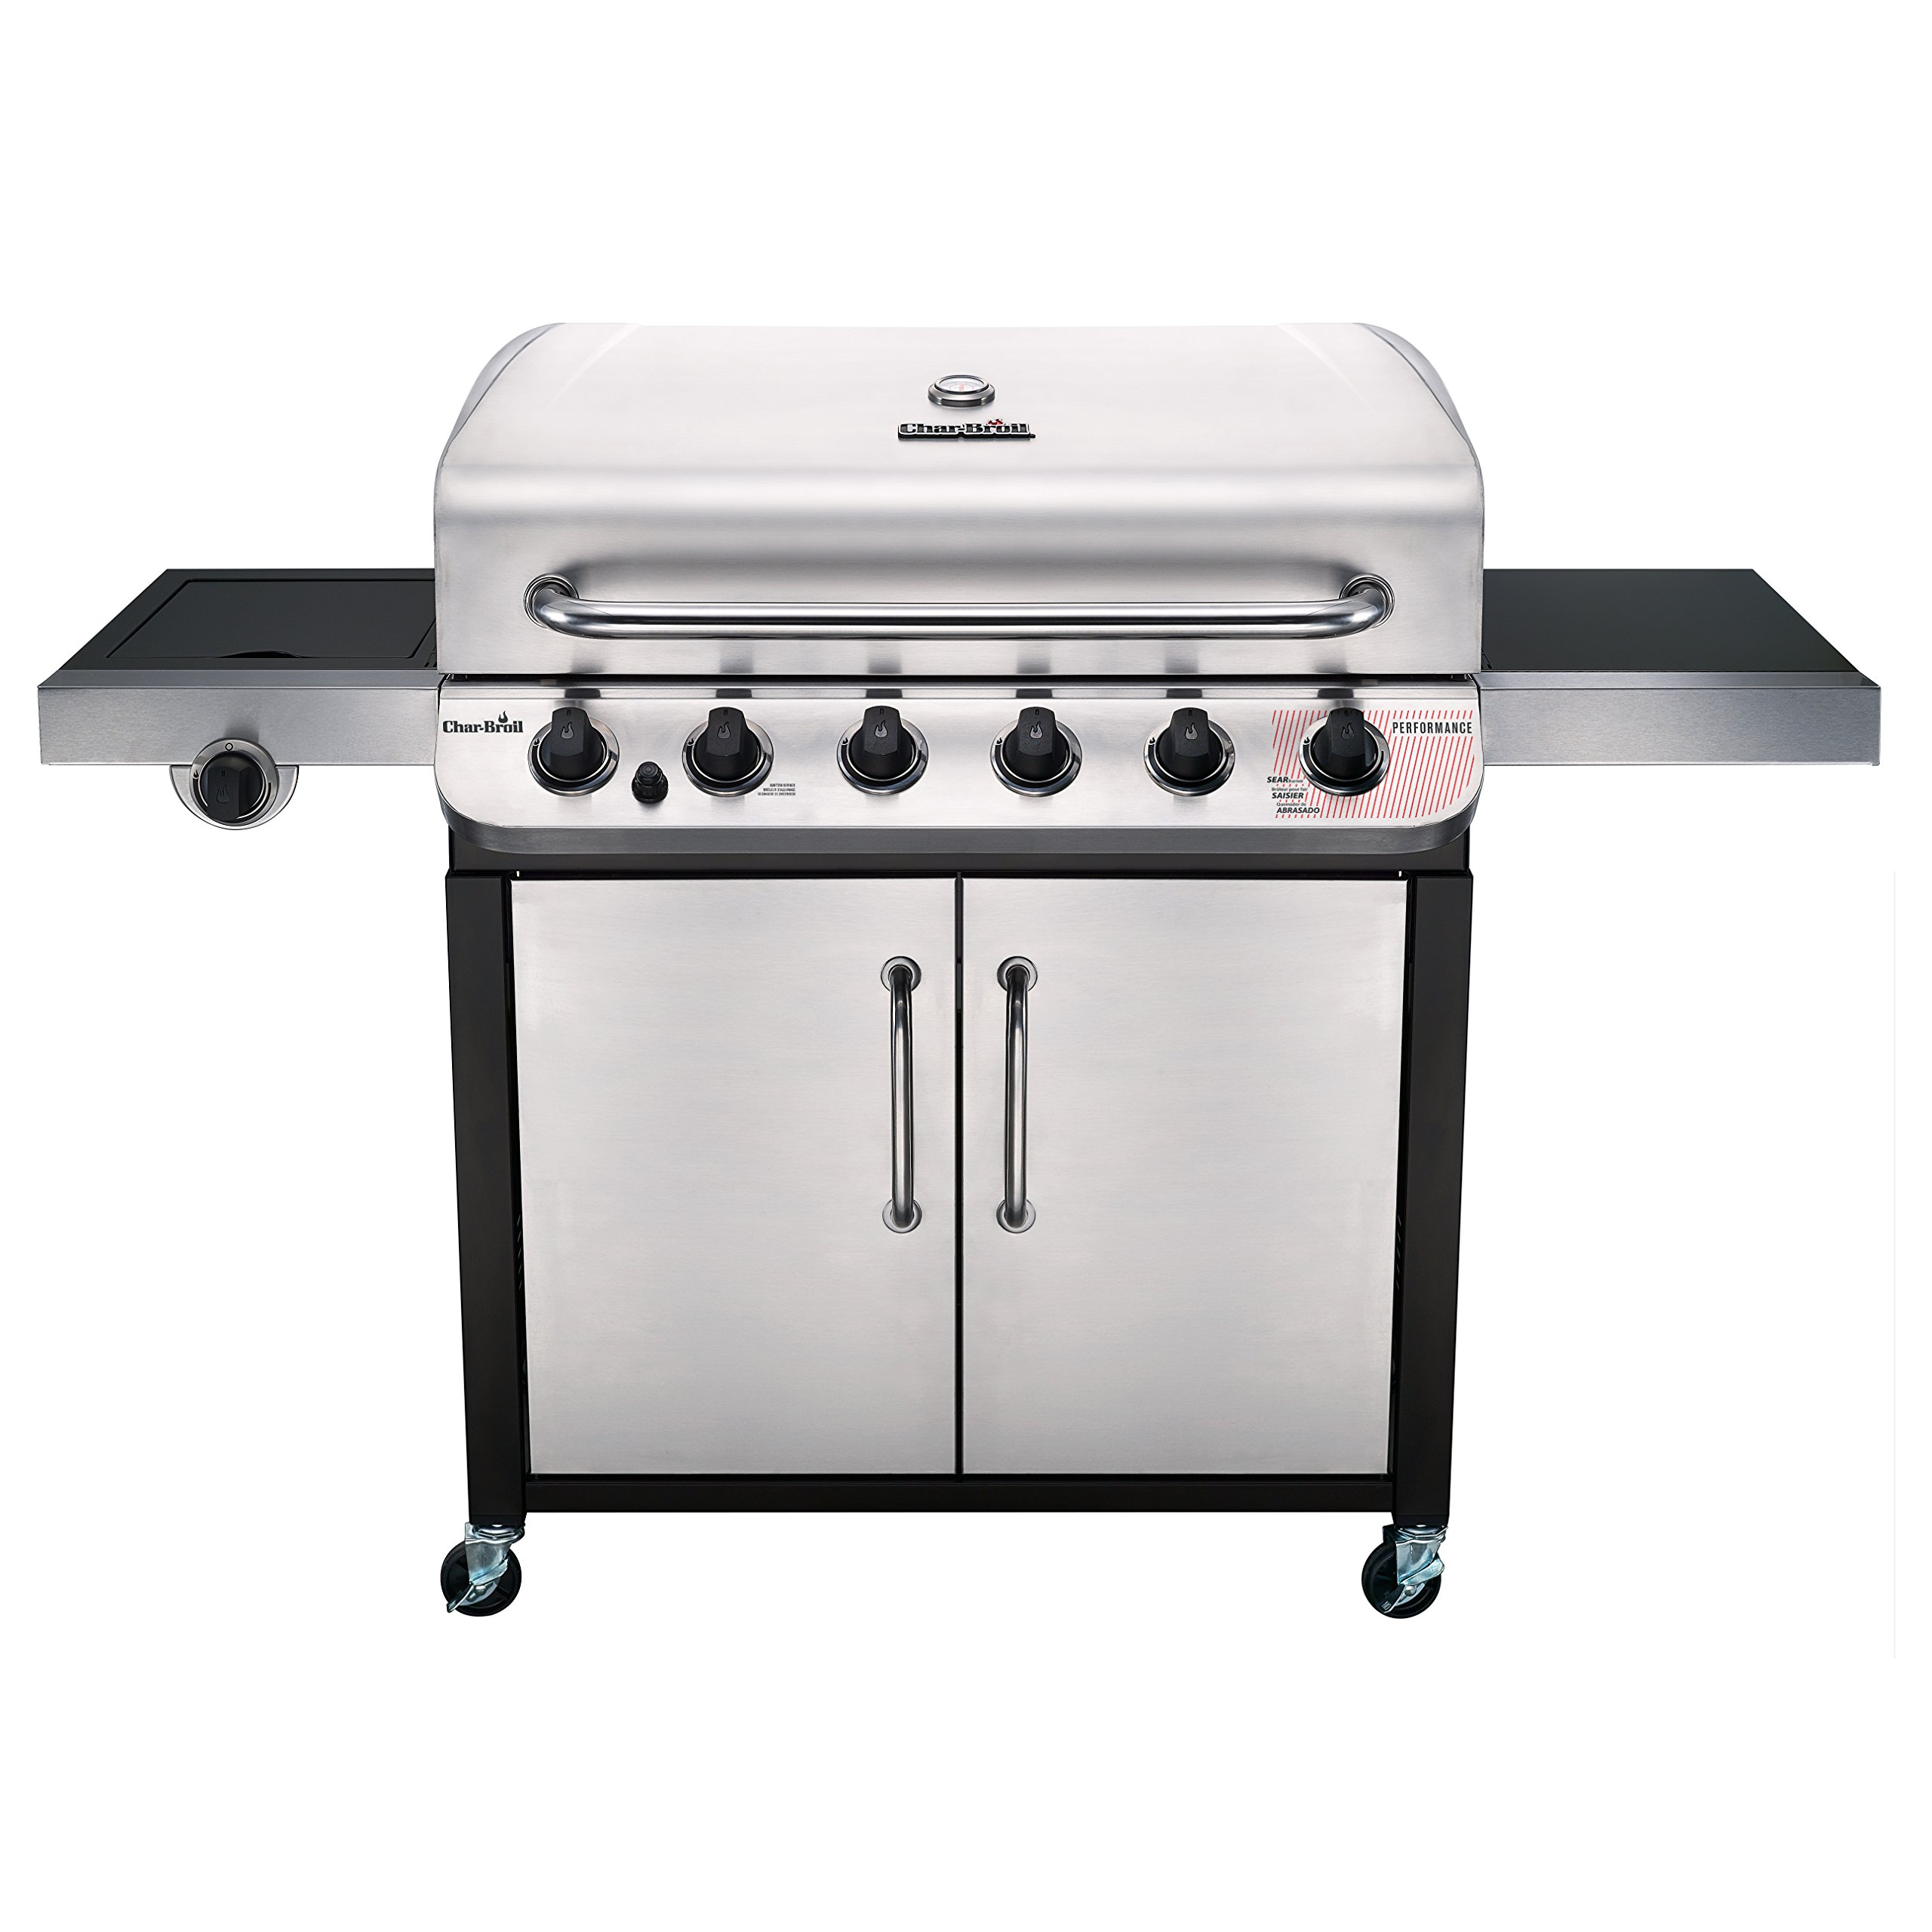 Char-Broil 463274619 Performance Series 6-Burner Gas Grill, Stainless/Black by Char-Broil